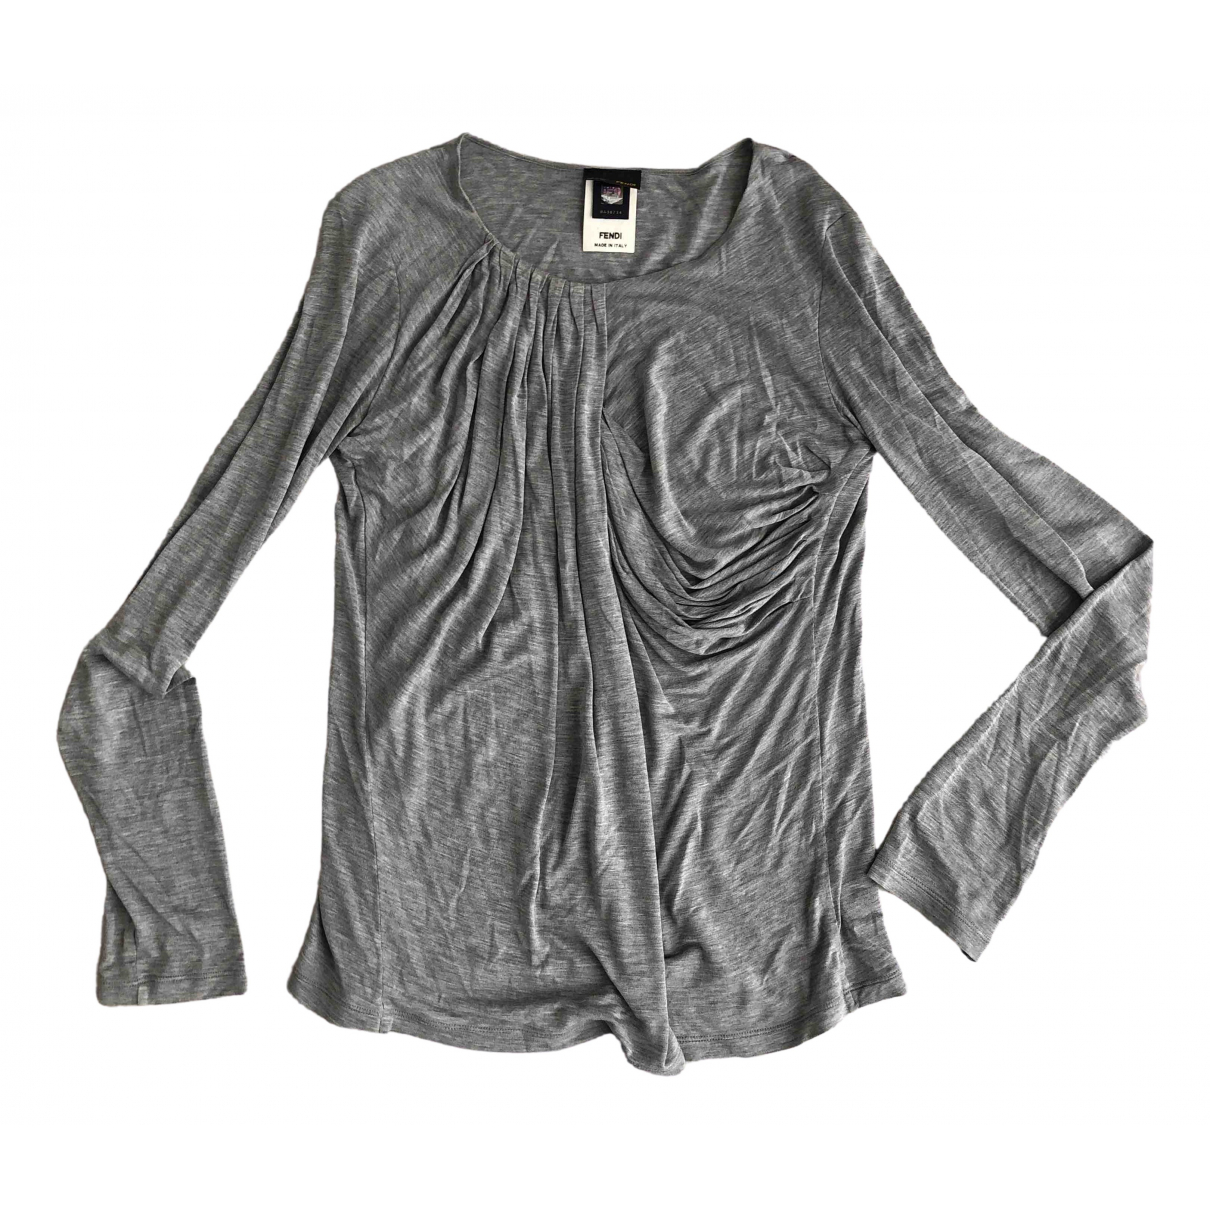 Fendi \N Grey  top for Women 40 IT